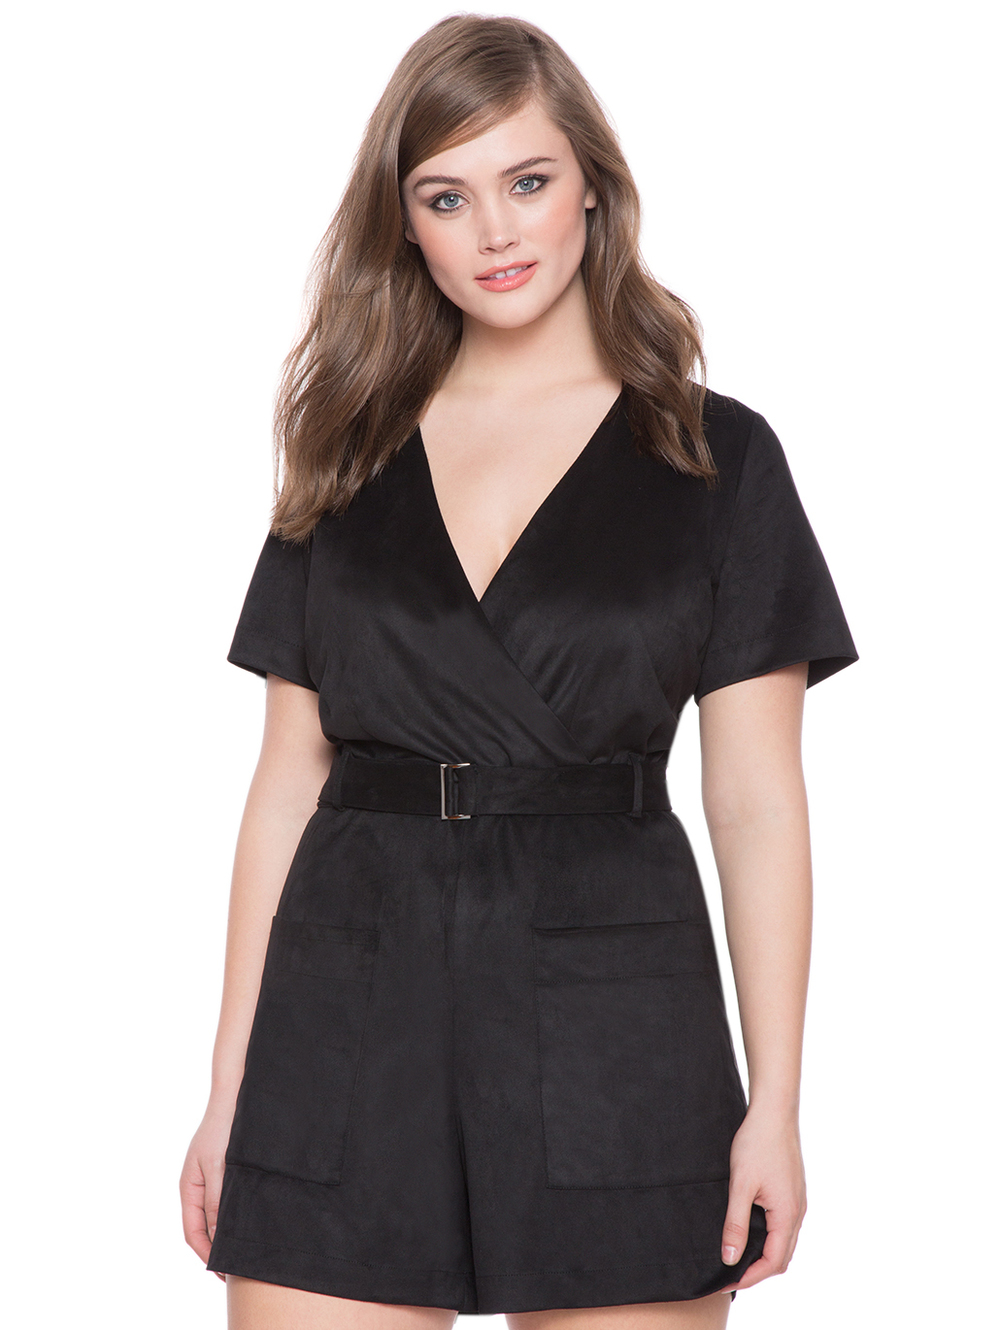 Faux Suede Romper. Eloquii. $110 Additional 60% off with code: ENJOY.